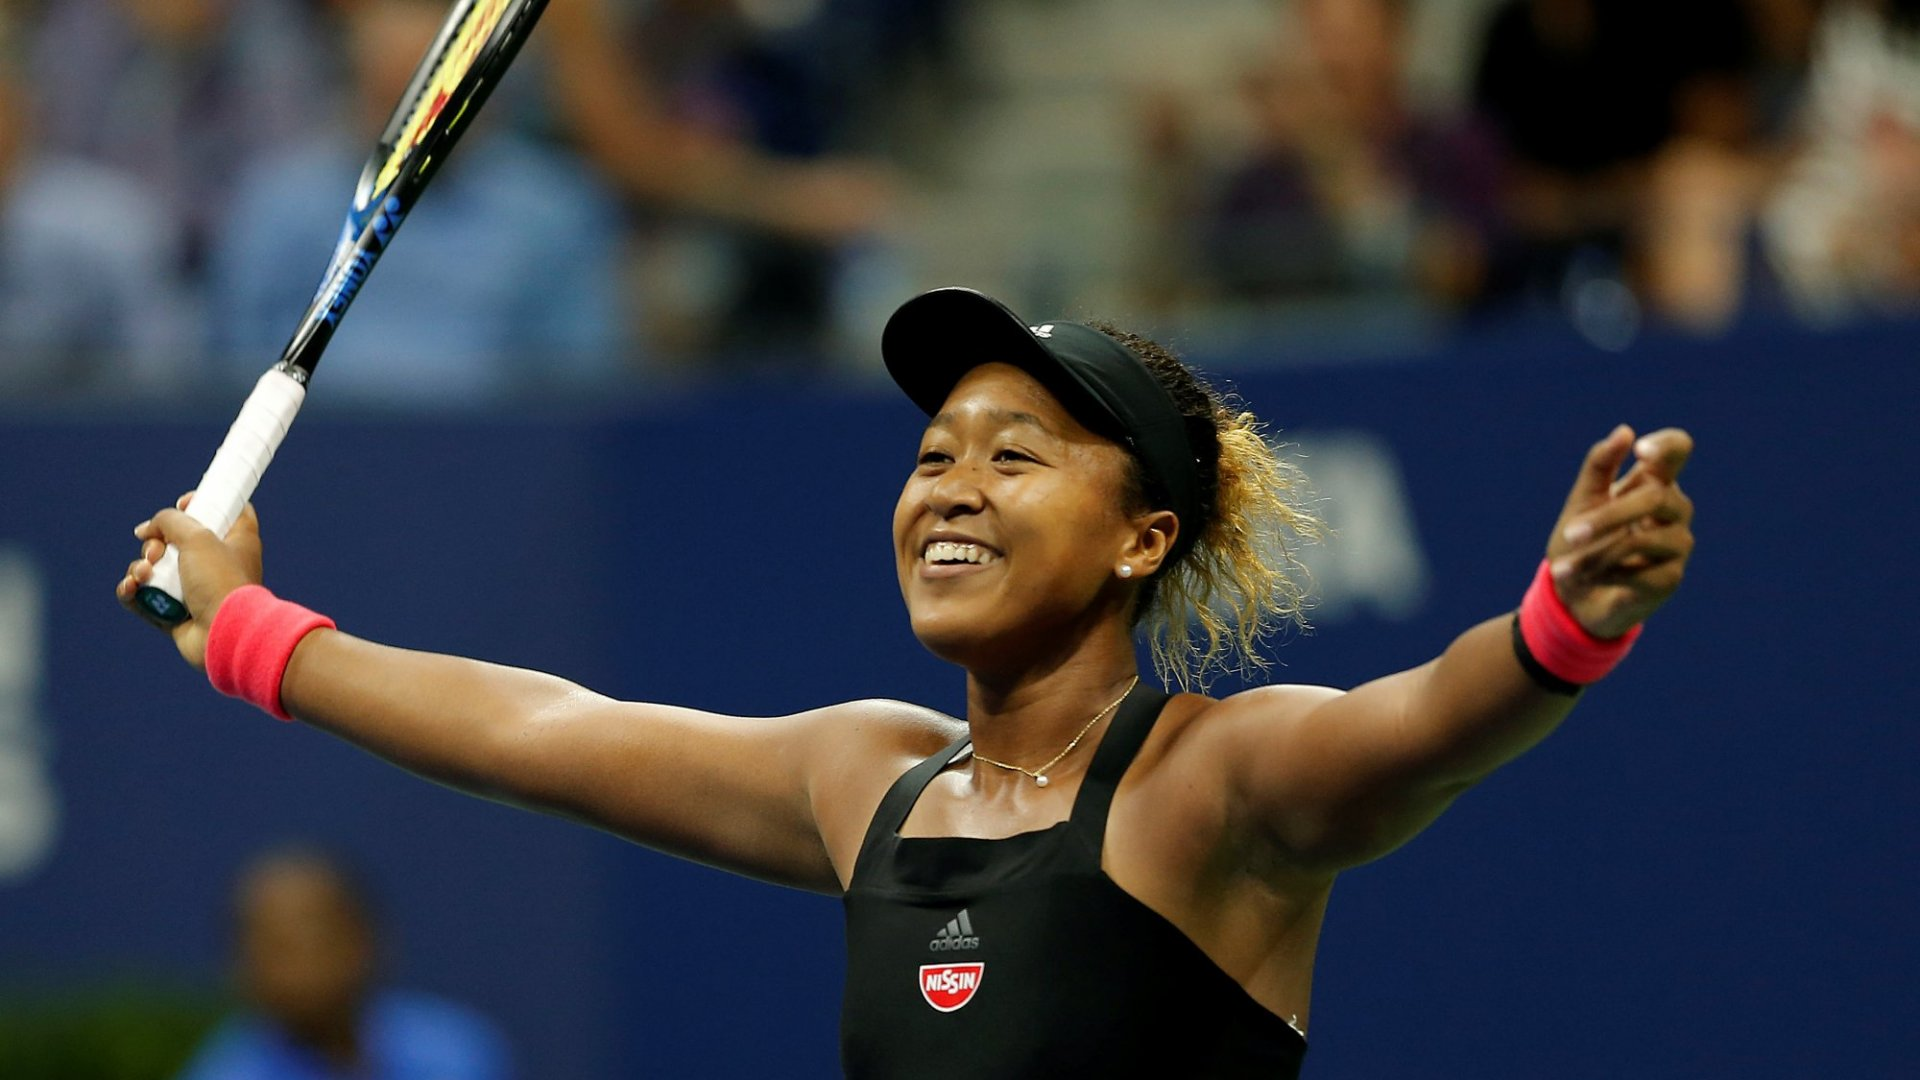 The U.S. Open Tennis Final Was Chaotic and Controversial. It Also Revealed the Most Important Leadership Skill of All